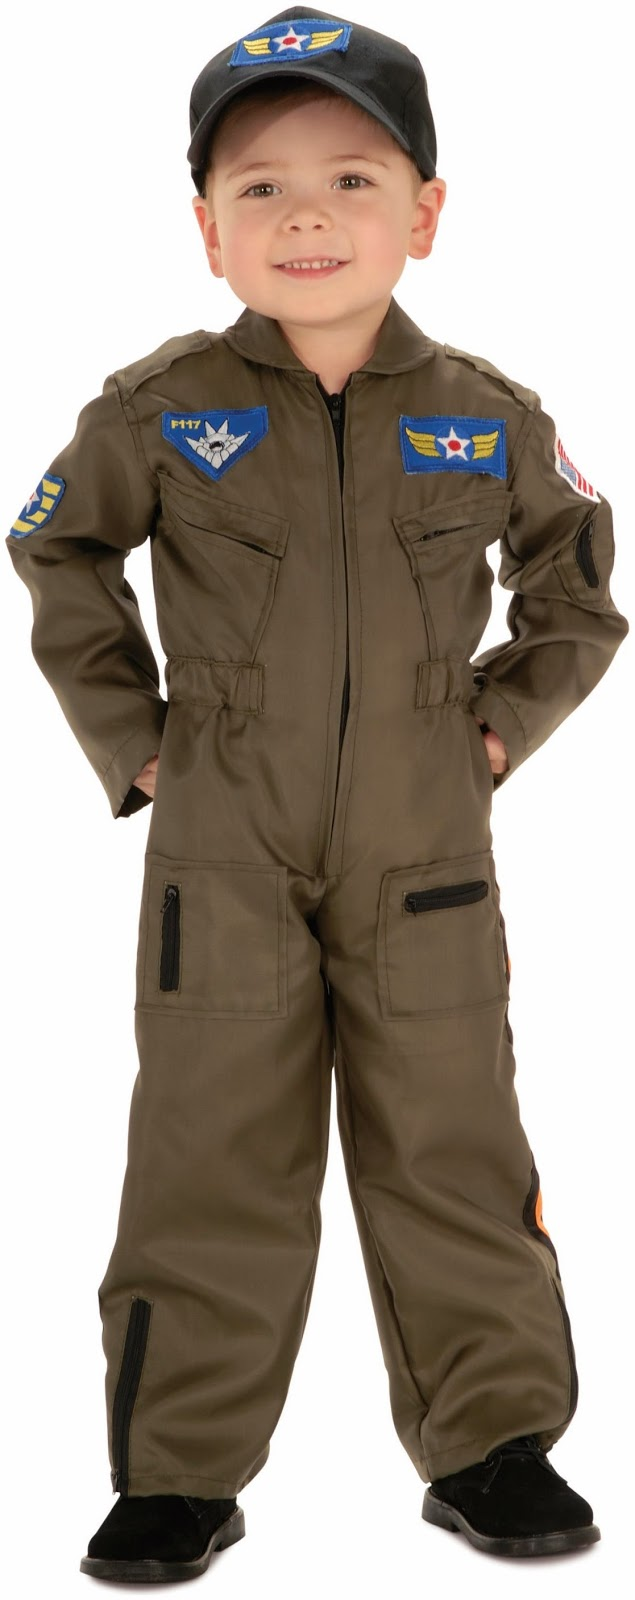 Air_Force_Officer_Costume_Kids